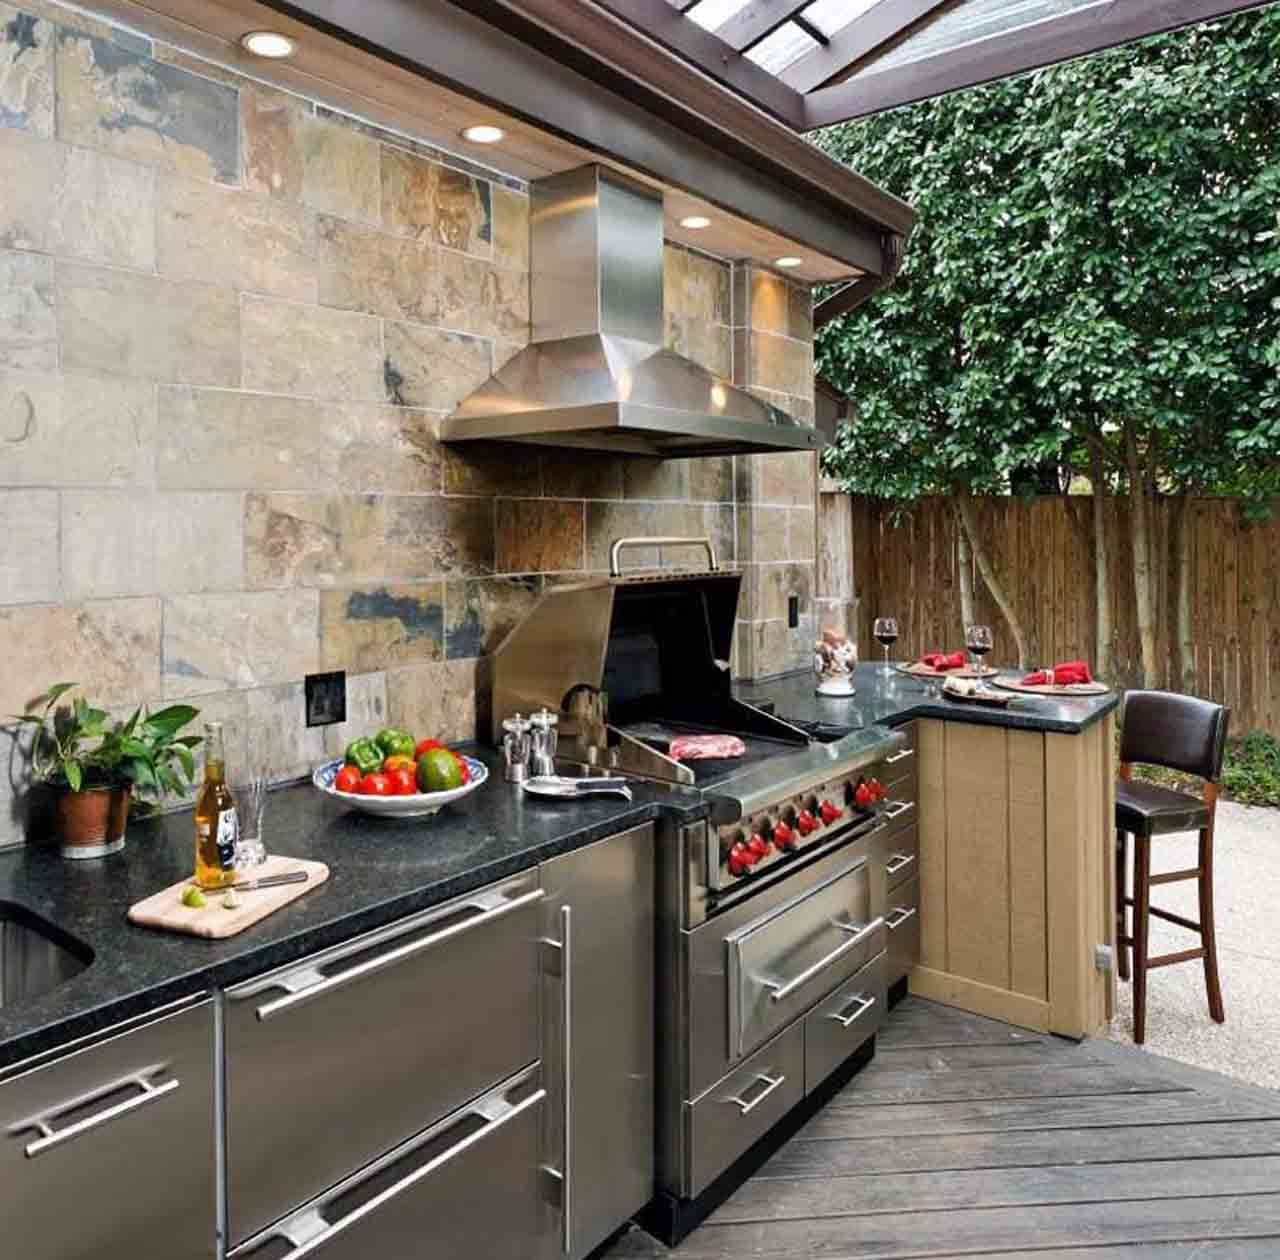 Contemporary Outdoor Kitchen: Planning Your Own Outdoor Kitchens: Modern Outdoor Kitchen